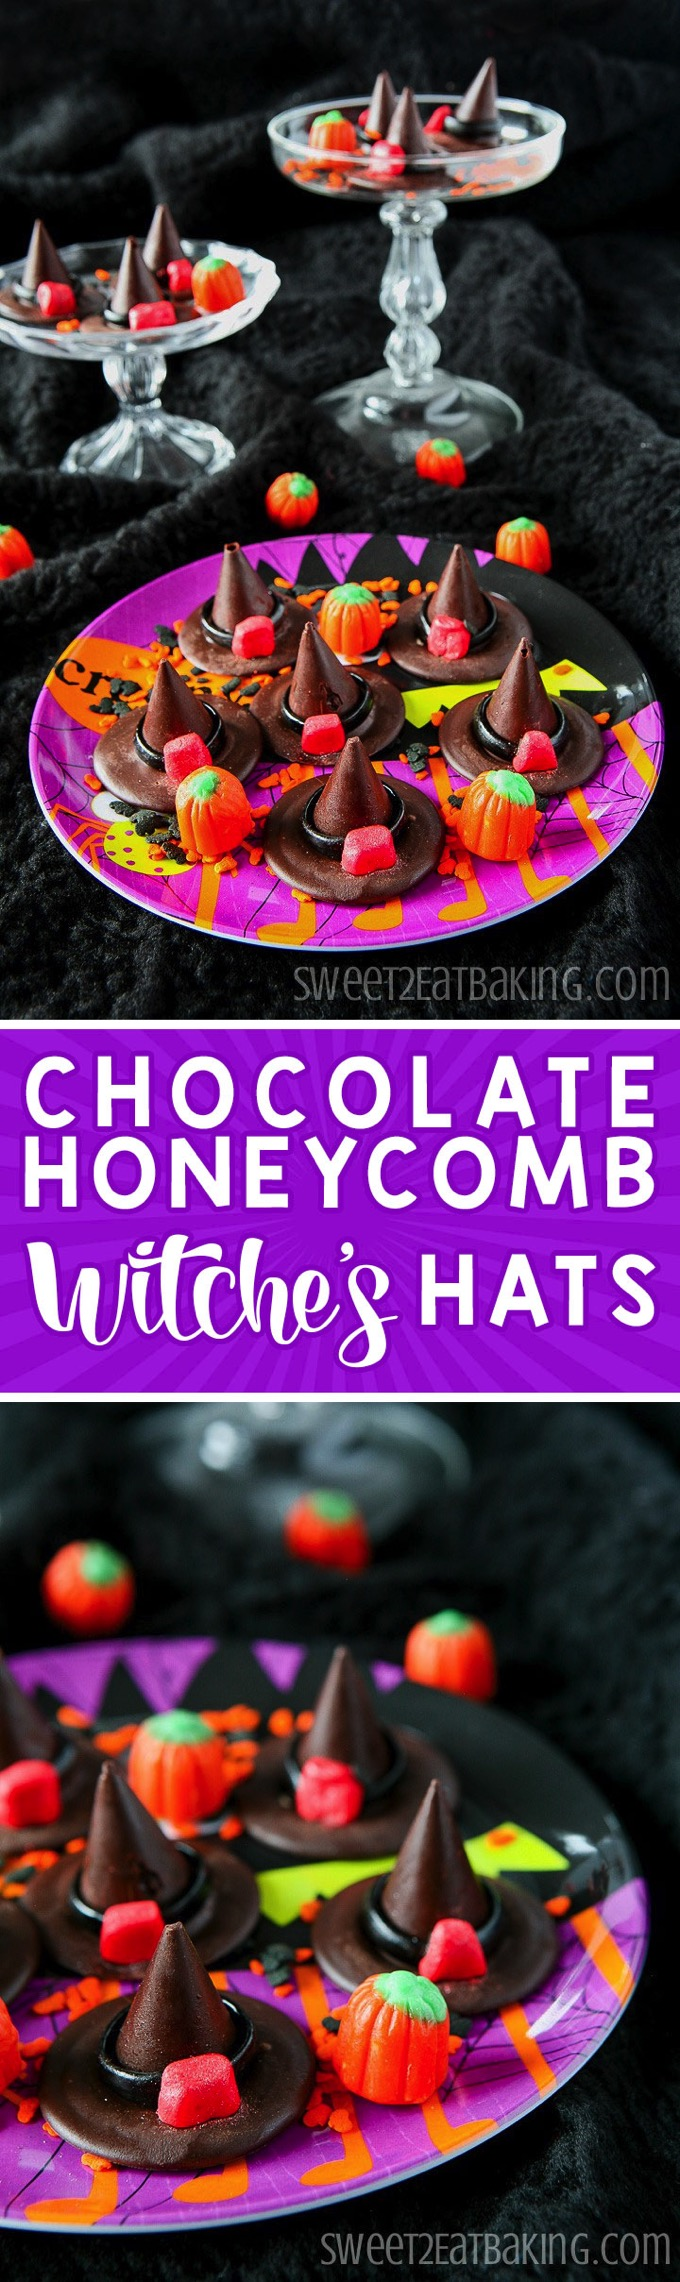 Chocolate Honeycomb Halloween Witches' Hats Recipe by Sweet2EatBaking.com | Spook your friends this Halloween with these edible witches' hats. They're made from crushed honeycomb and chocolate with liquorice and fondant ribbon details. Quick and easy to make, looks impressive, and perfect for a Halloween Party.